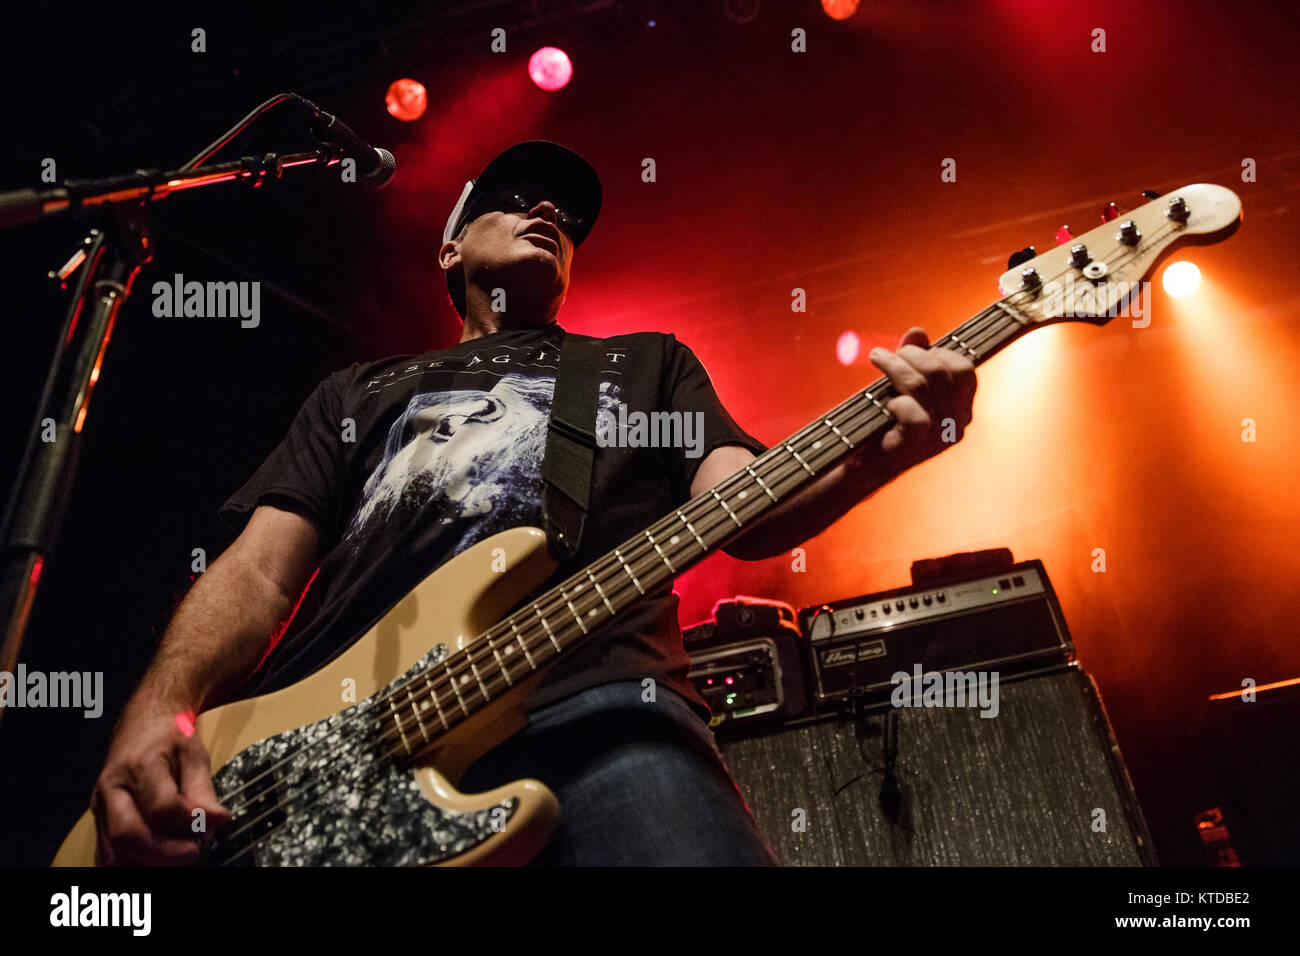 The American punk band Pennywise performs a live concert at Amager Bio in Copenhagen. Here bass player Randy Bradbury - Stock Image